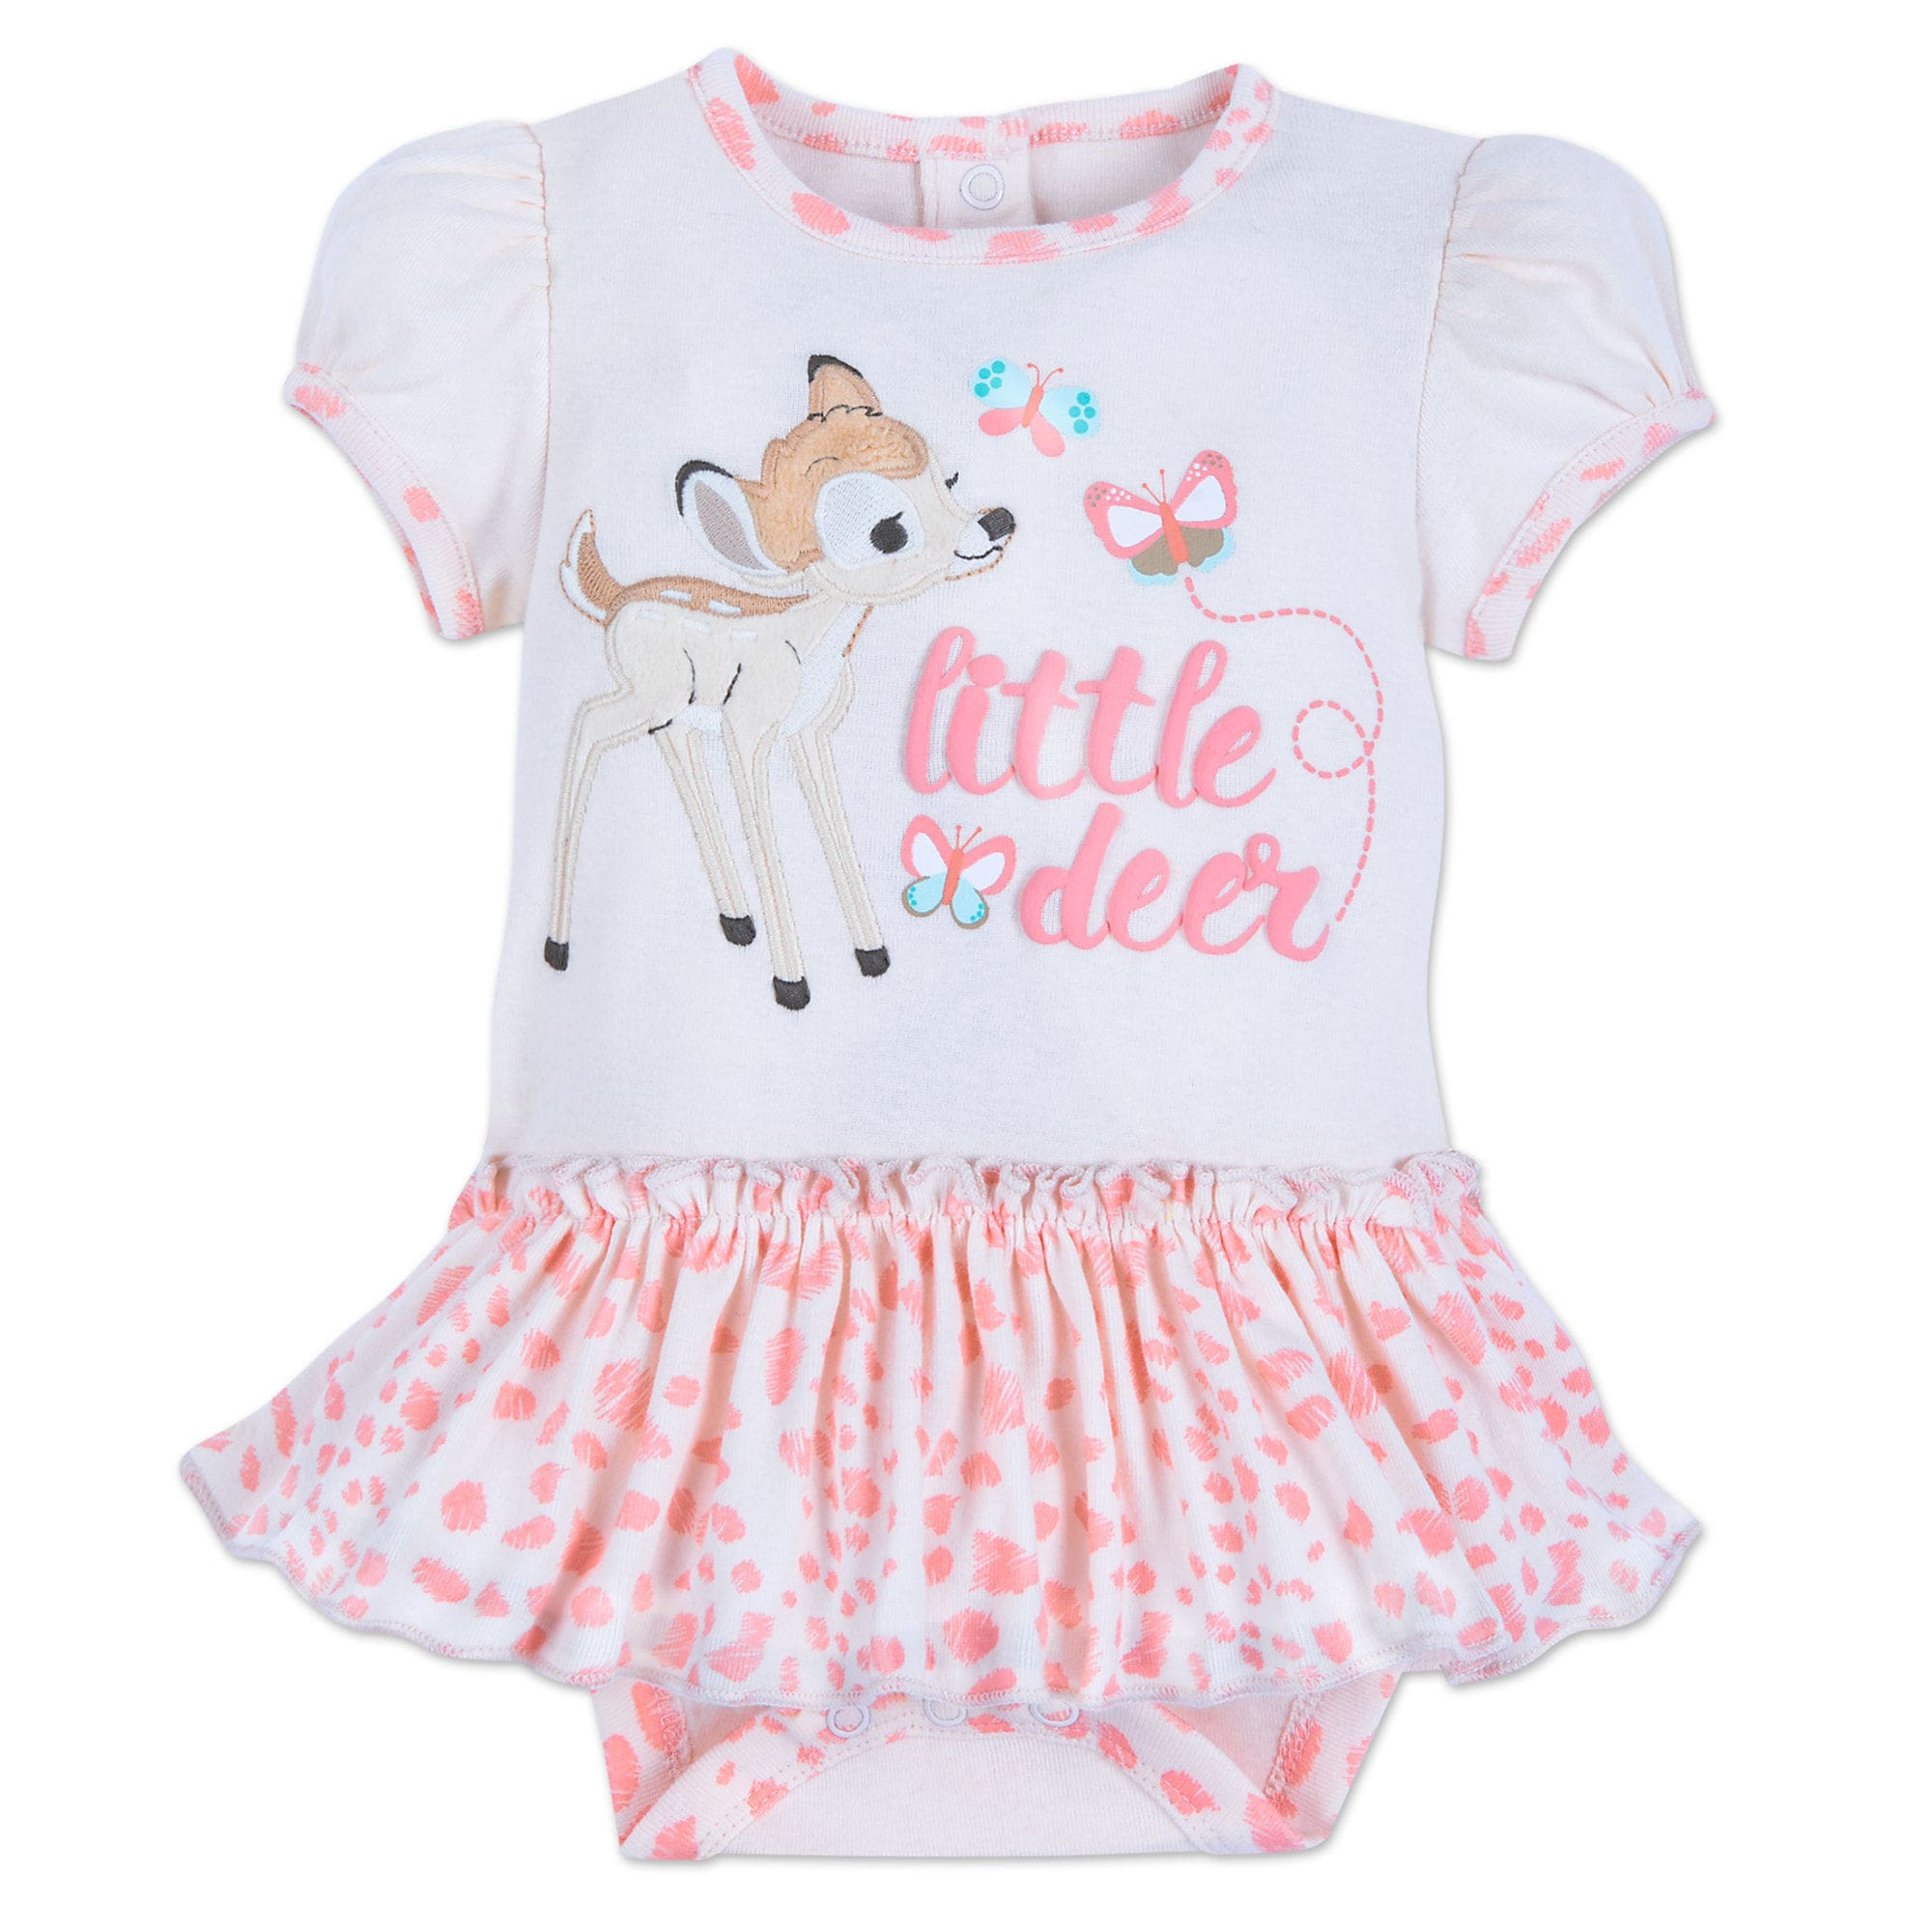 Product Image of Bambi Skirted Bodysuit for Baby # 1